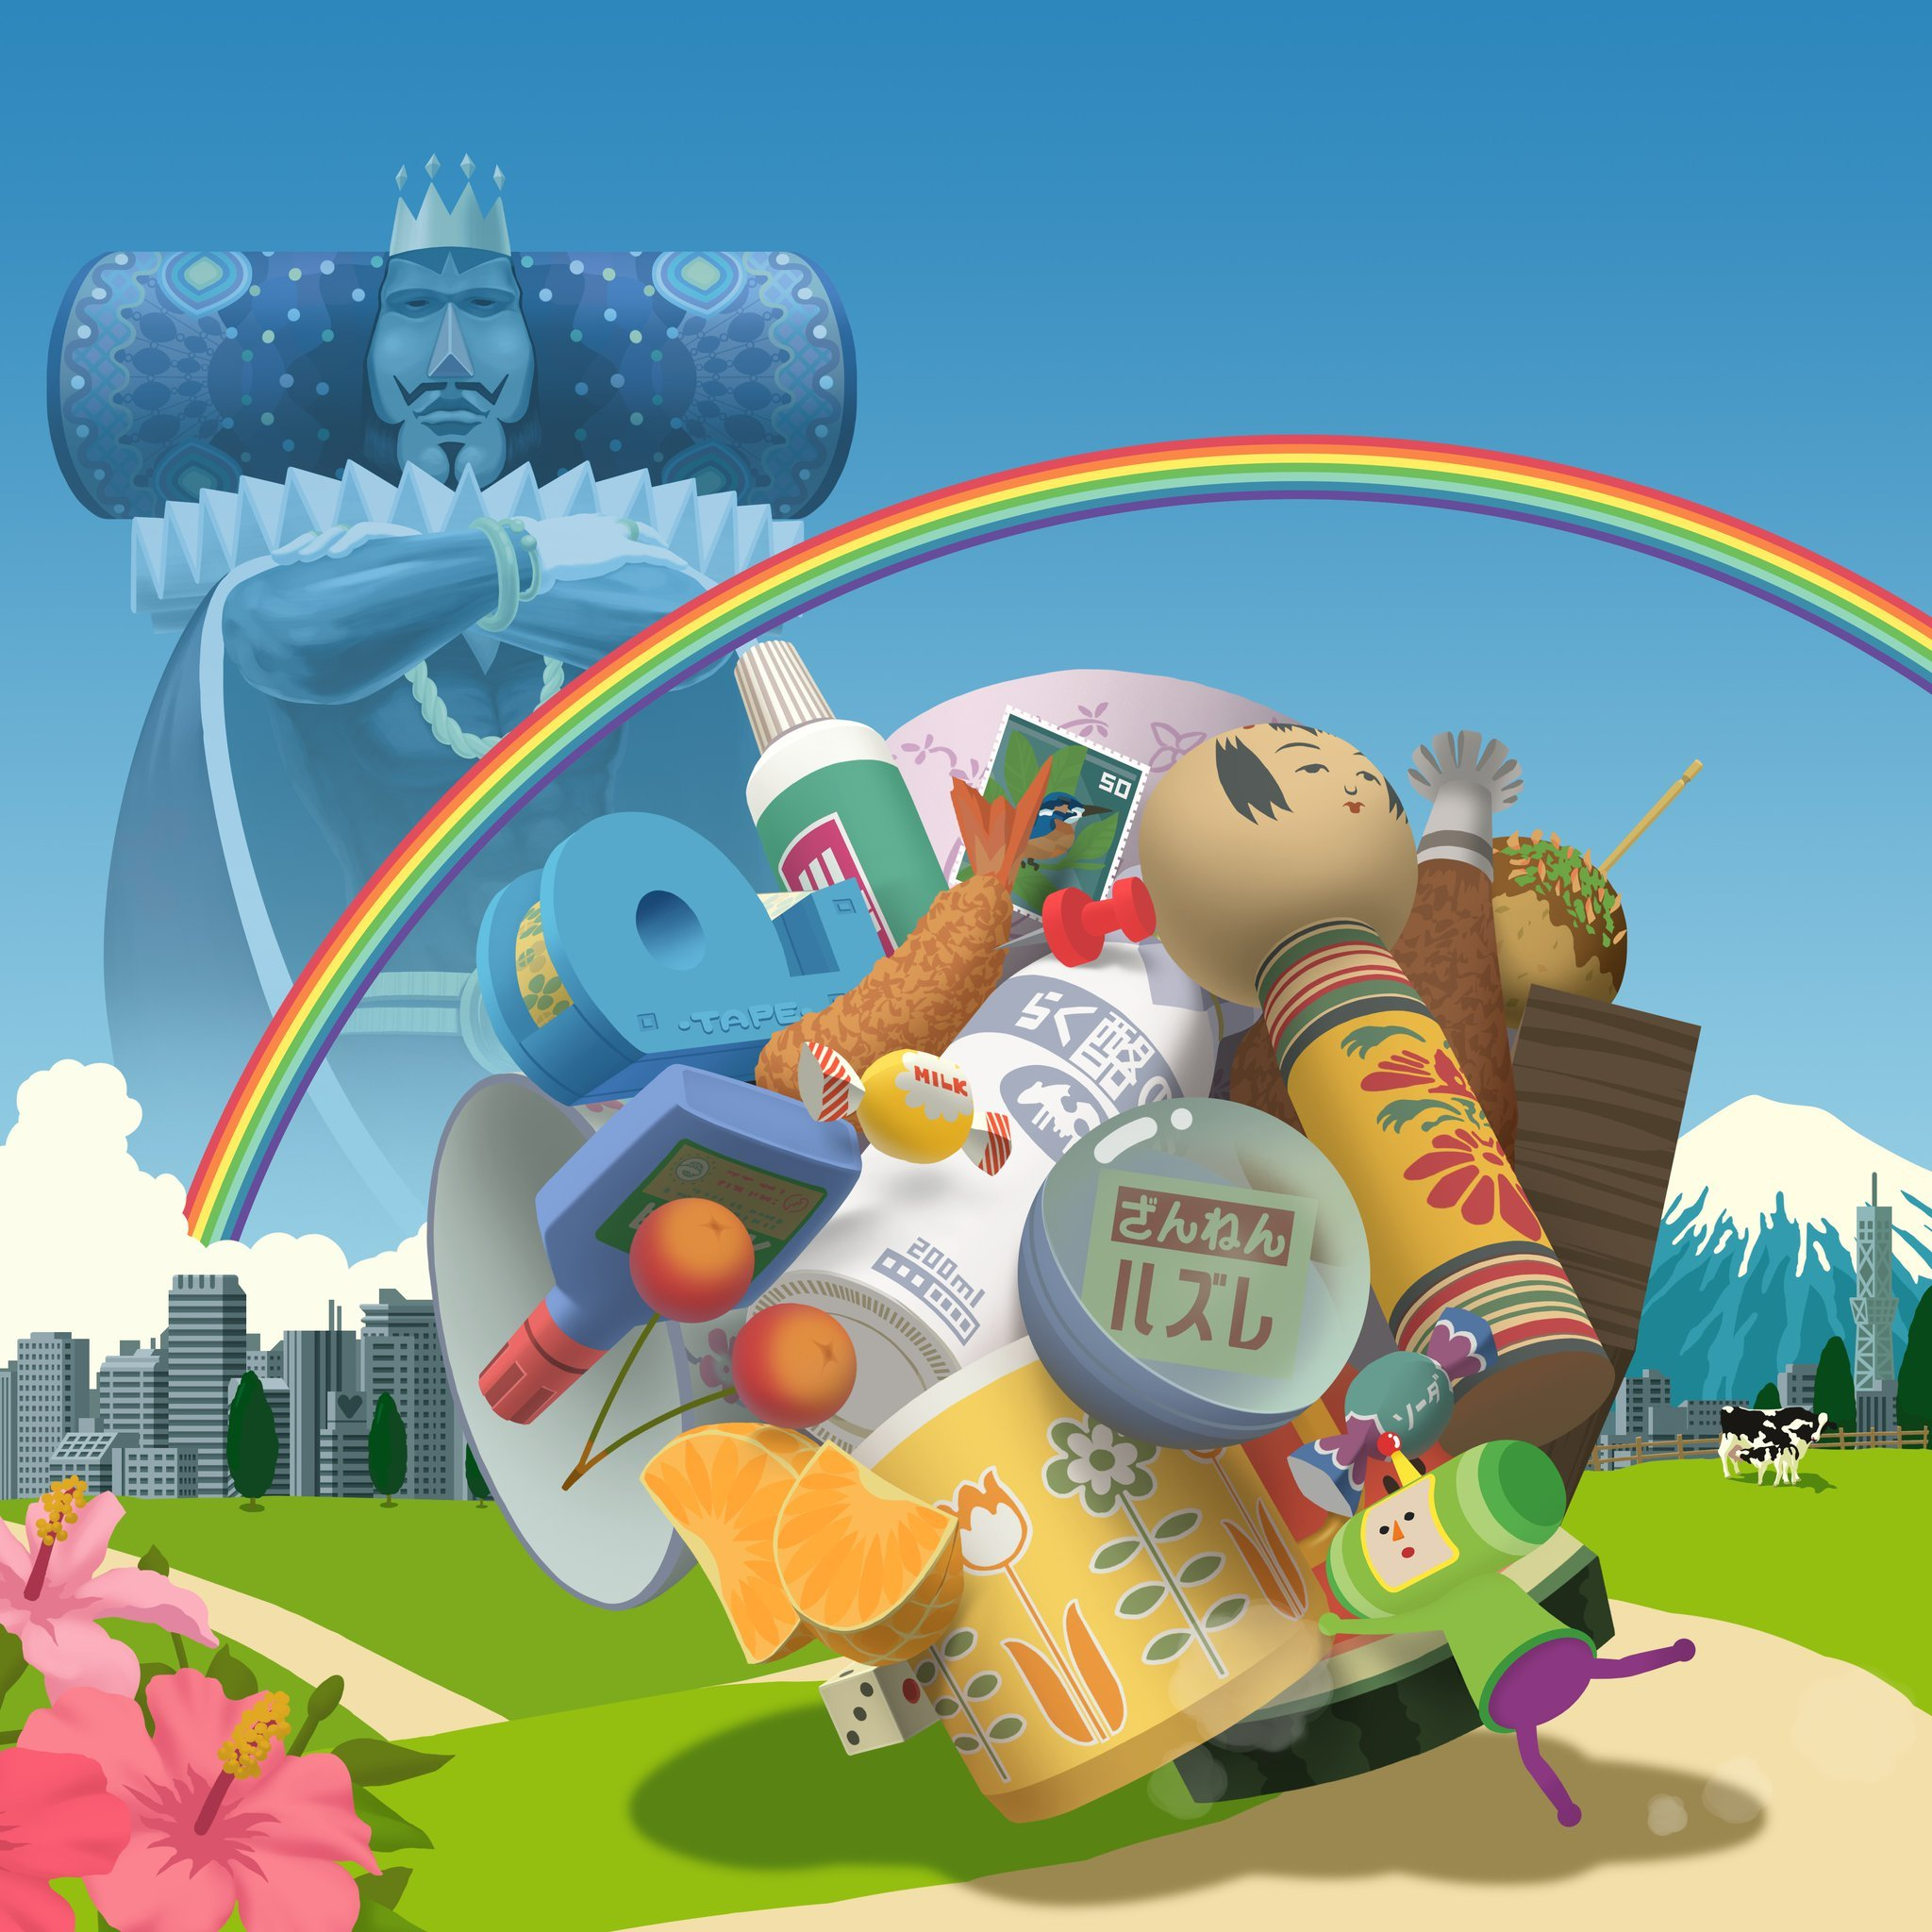 Katamari Damacy Remaster Rolls On To Switch & PC This December